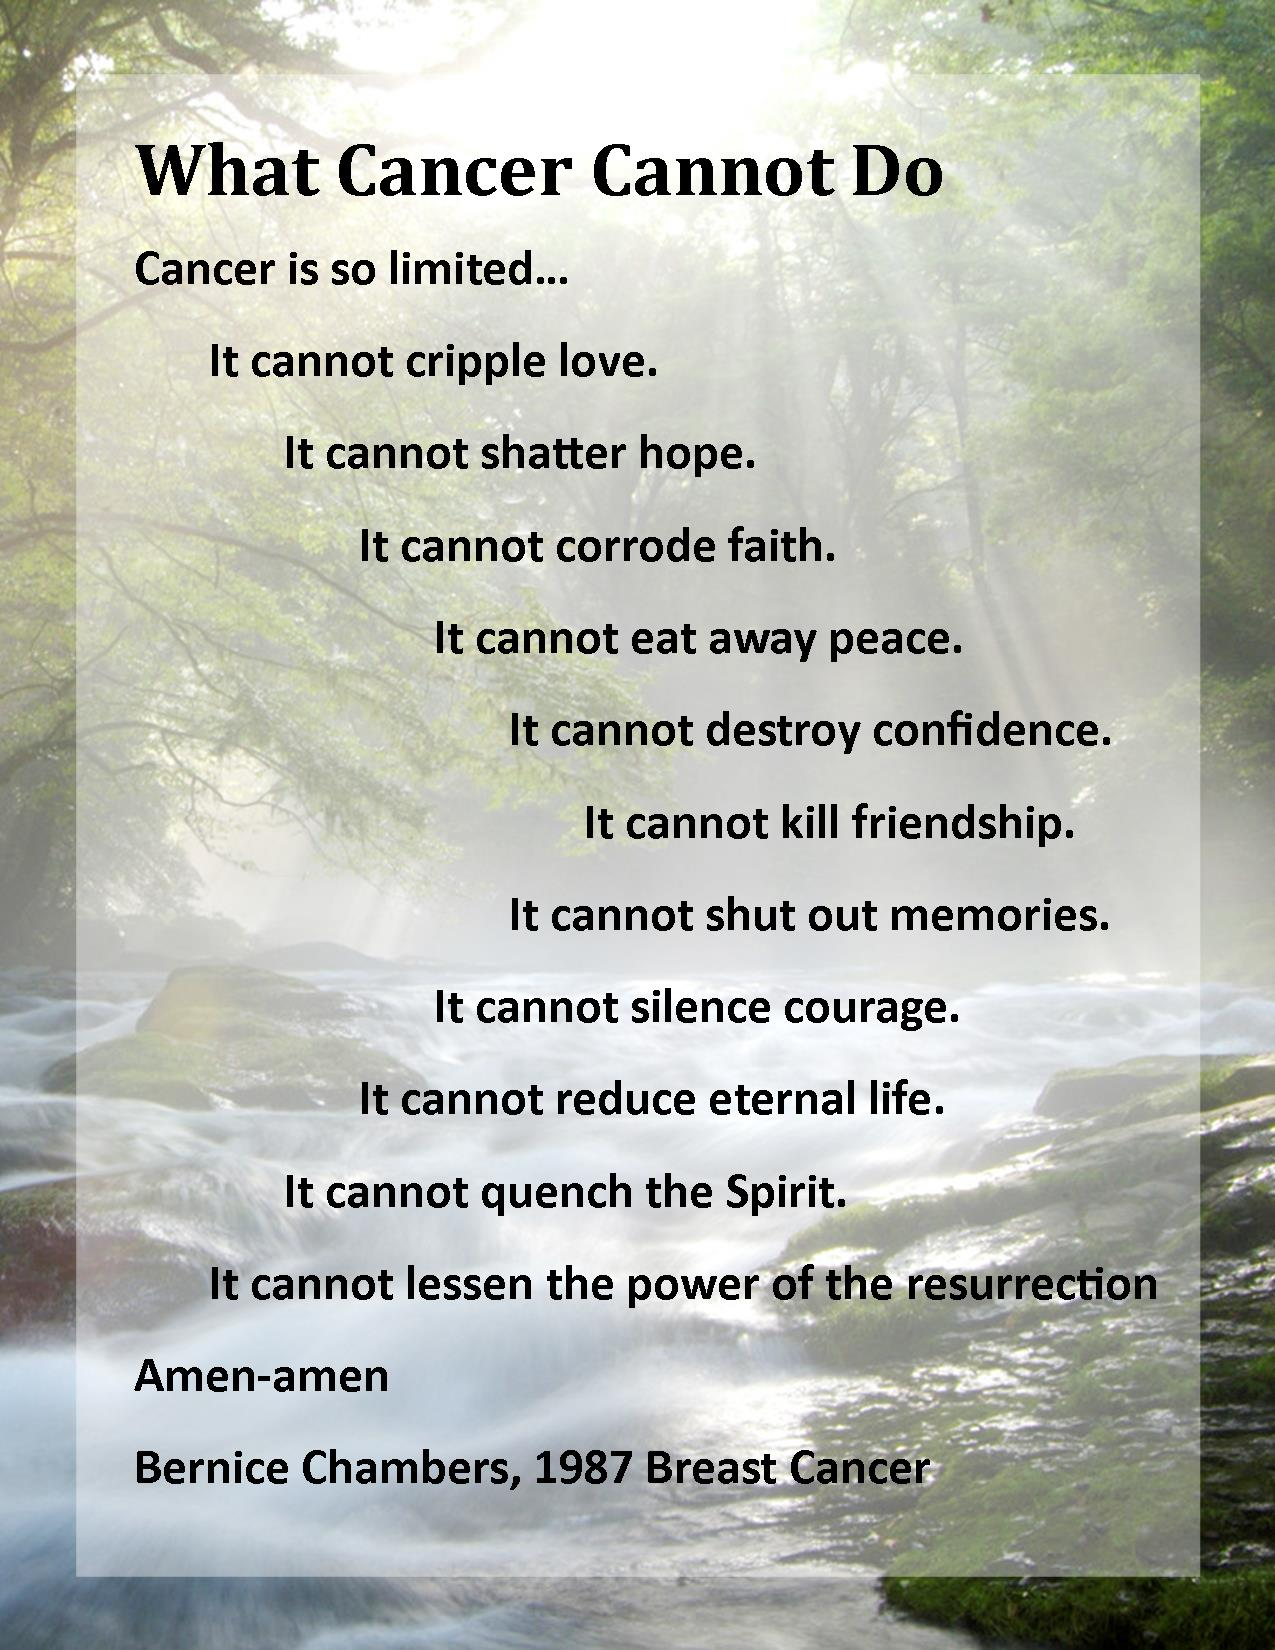 what cancer cannot do Help to lift spirits by making a quilt showcasing the quotes from the what cancer cannot do fabric panel cancer may cause pain and hardship, but this fabric panel reminds.